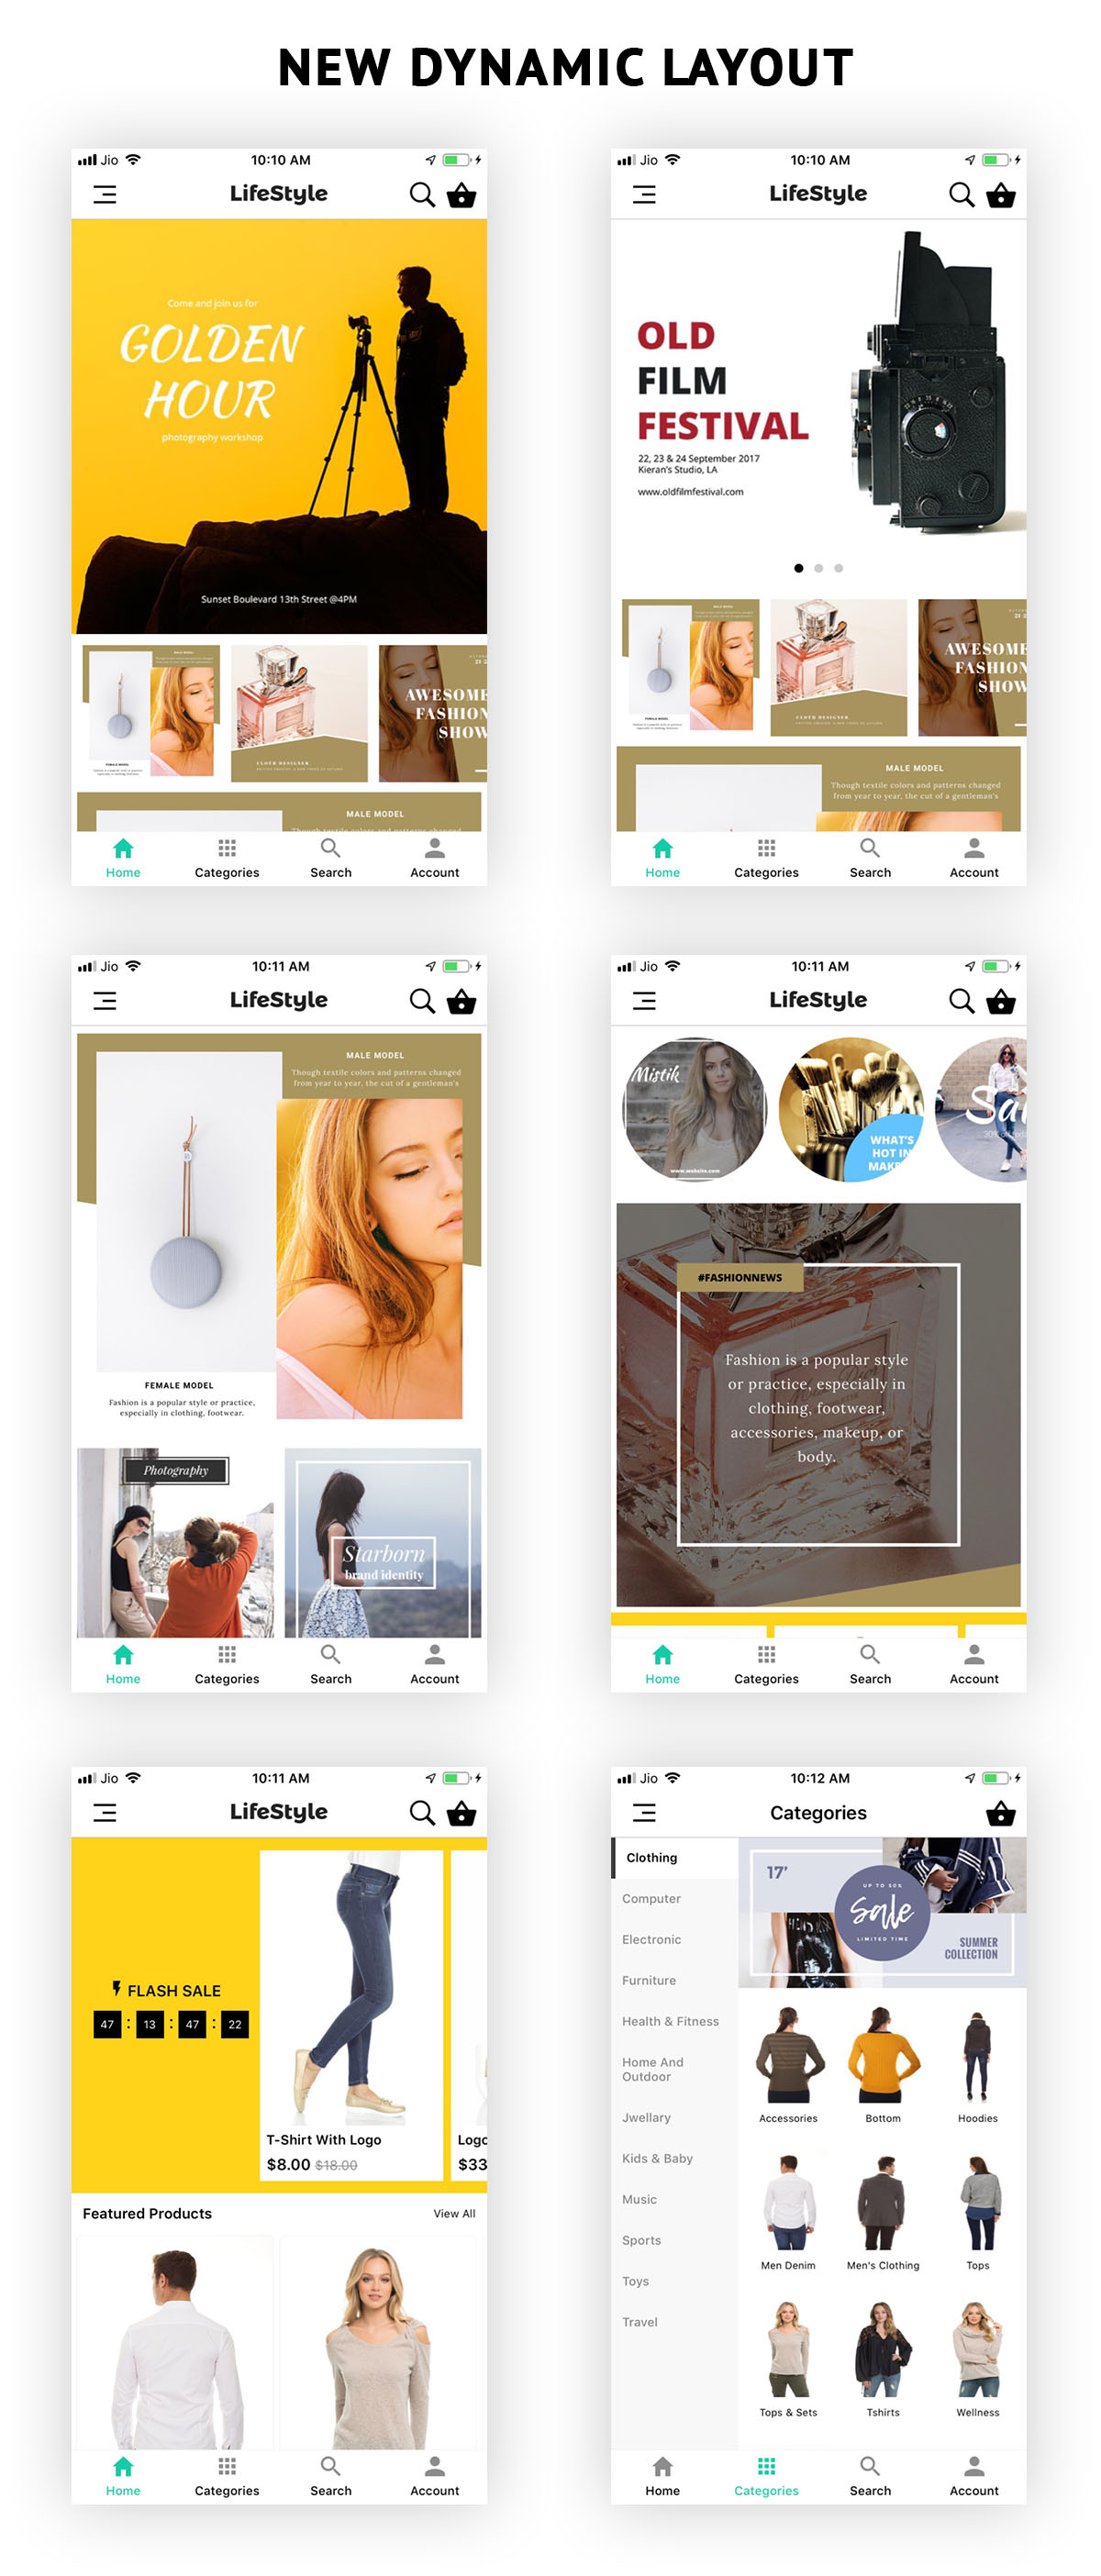 WooCommerce Mobile App ionic full application Lifestyle theme - 1